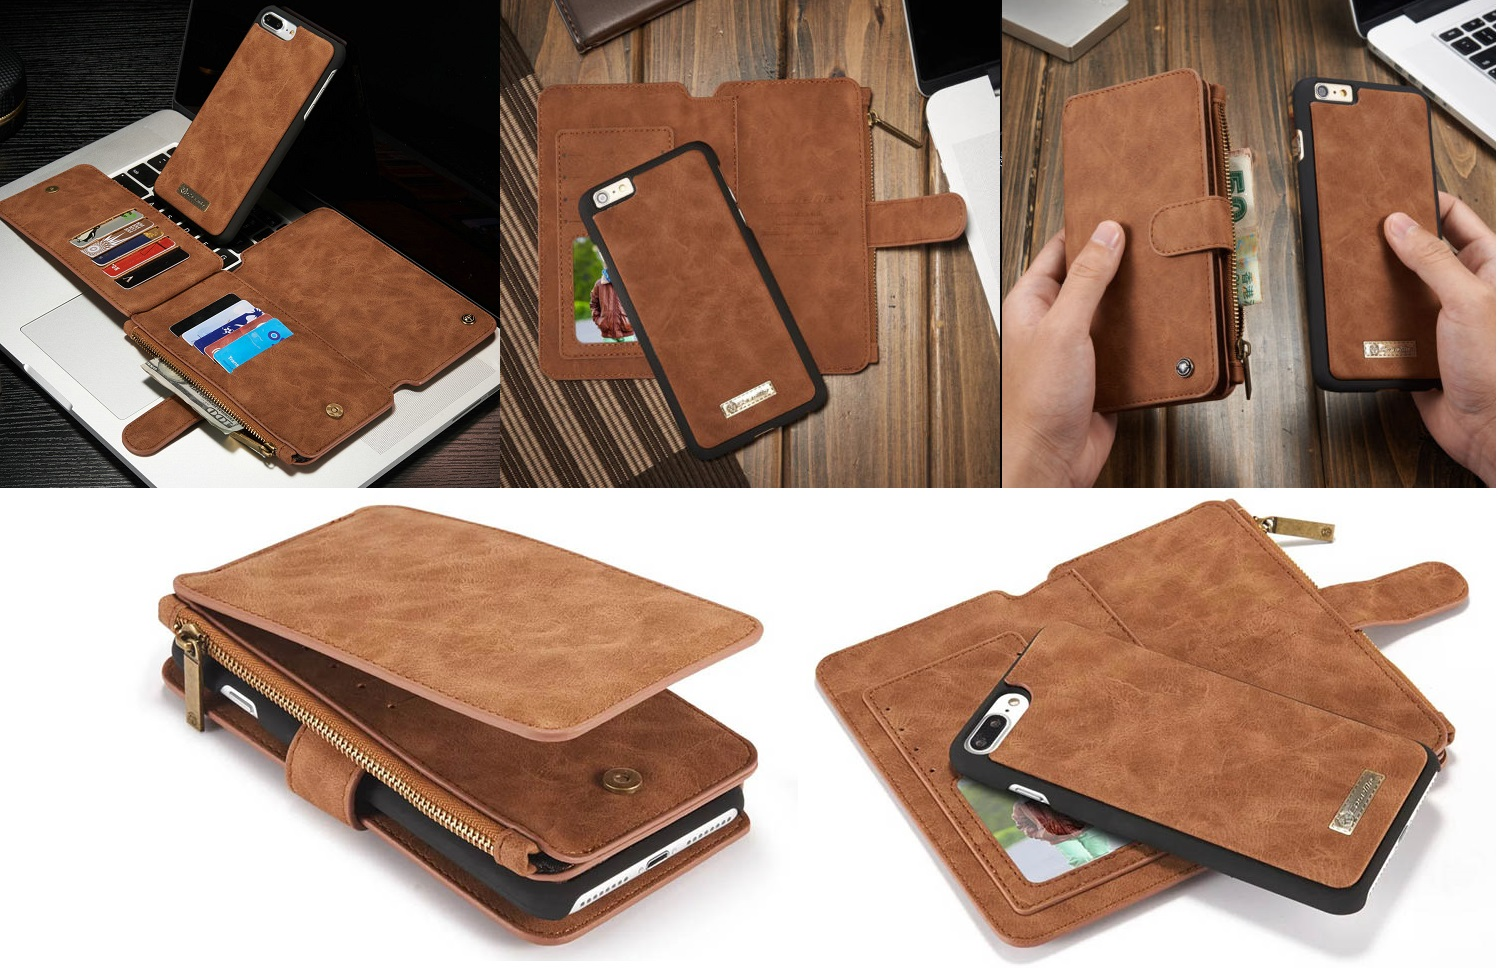 separation shoes 887c9 16d61 Leather Removable Wallet Magnetic Flip Card Case Cover for iPhone 7 ...